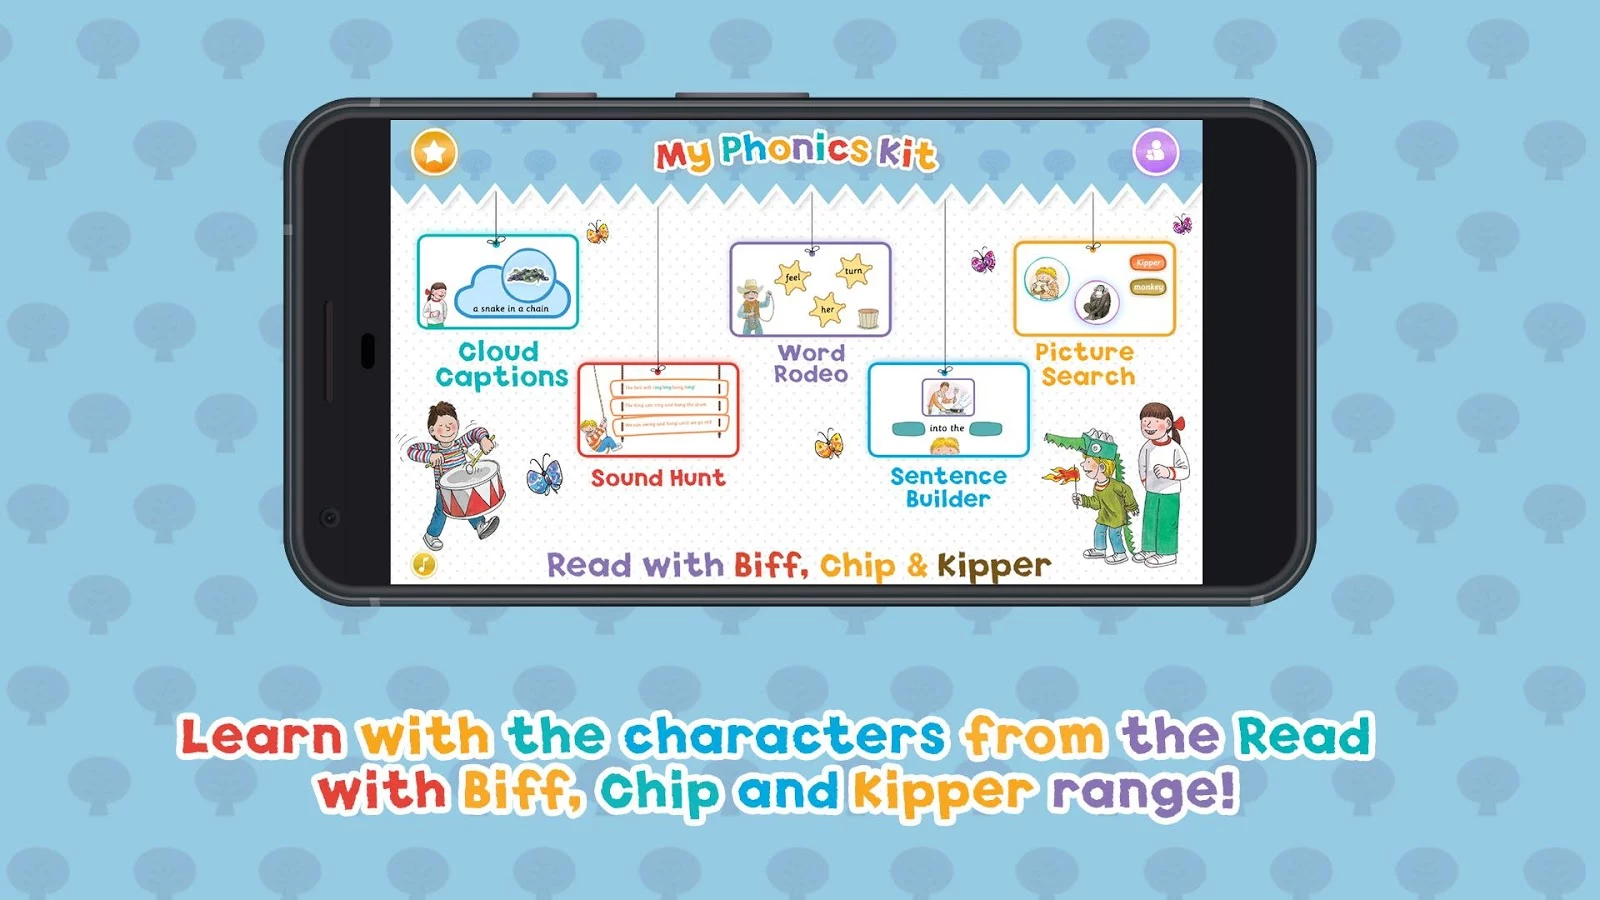 My Phonics Kit - Biff, Chip & Kipper